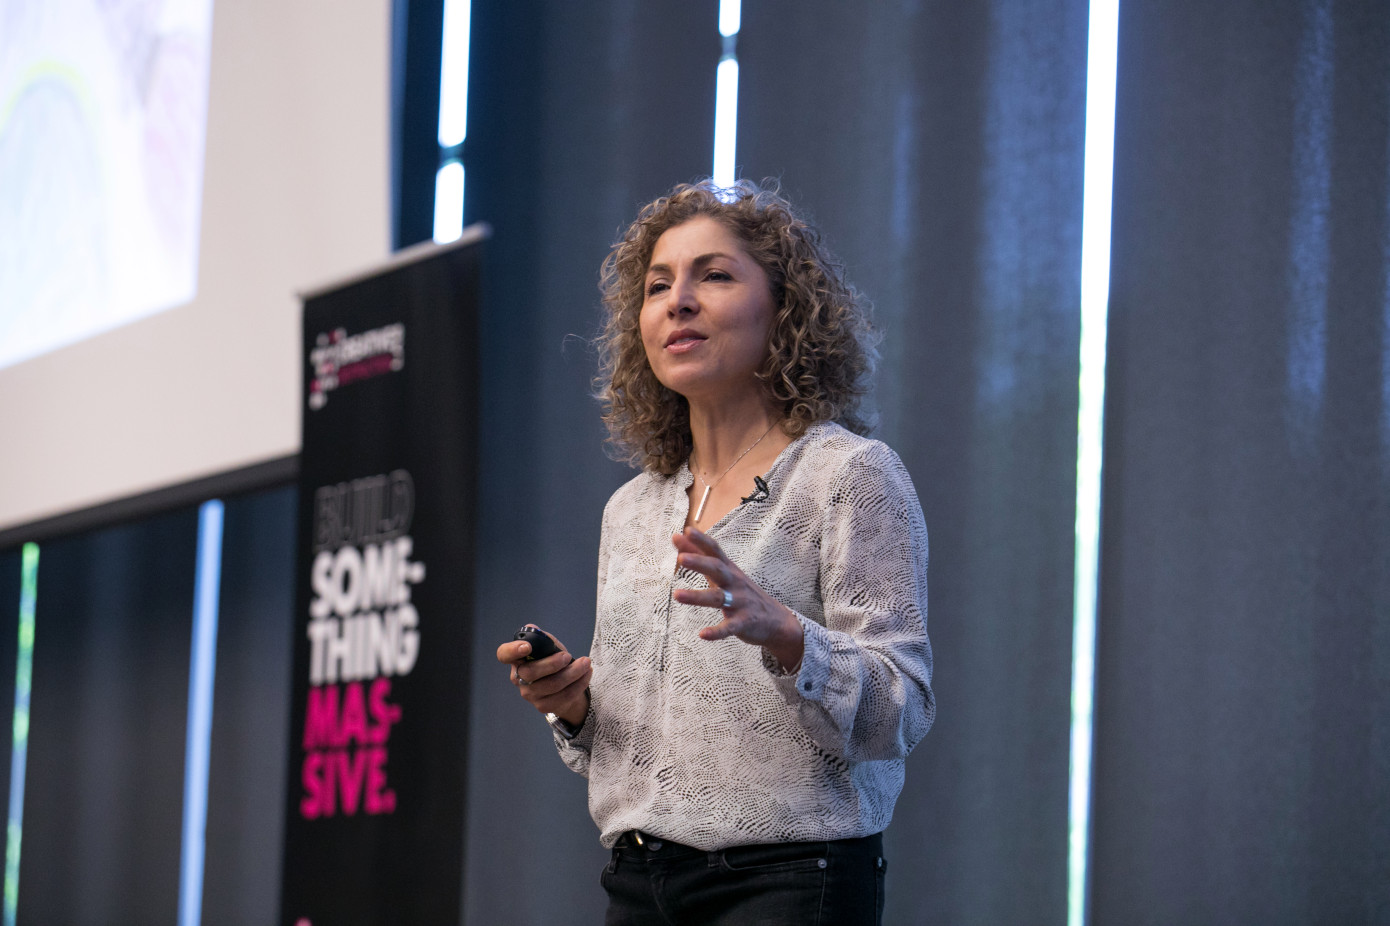 ISS commercialization was welcomed by Anousheh Ansari, a famous private space explorer